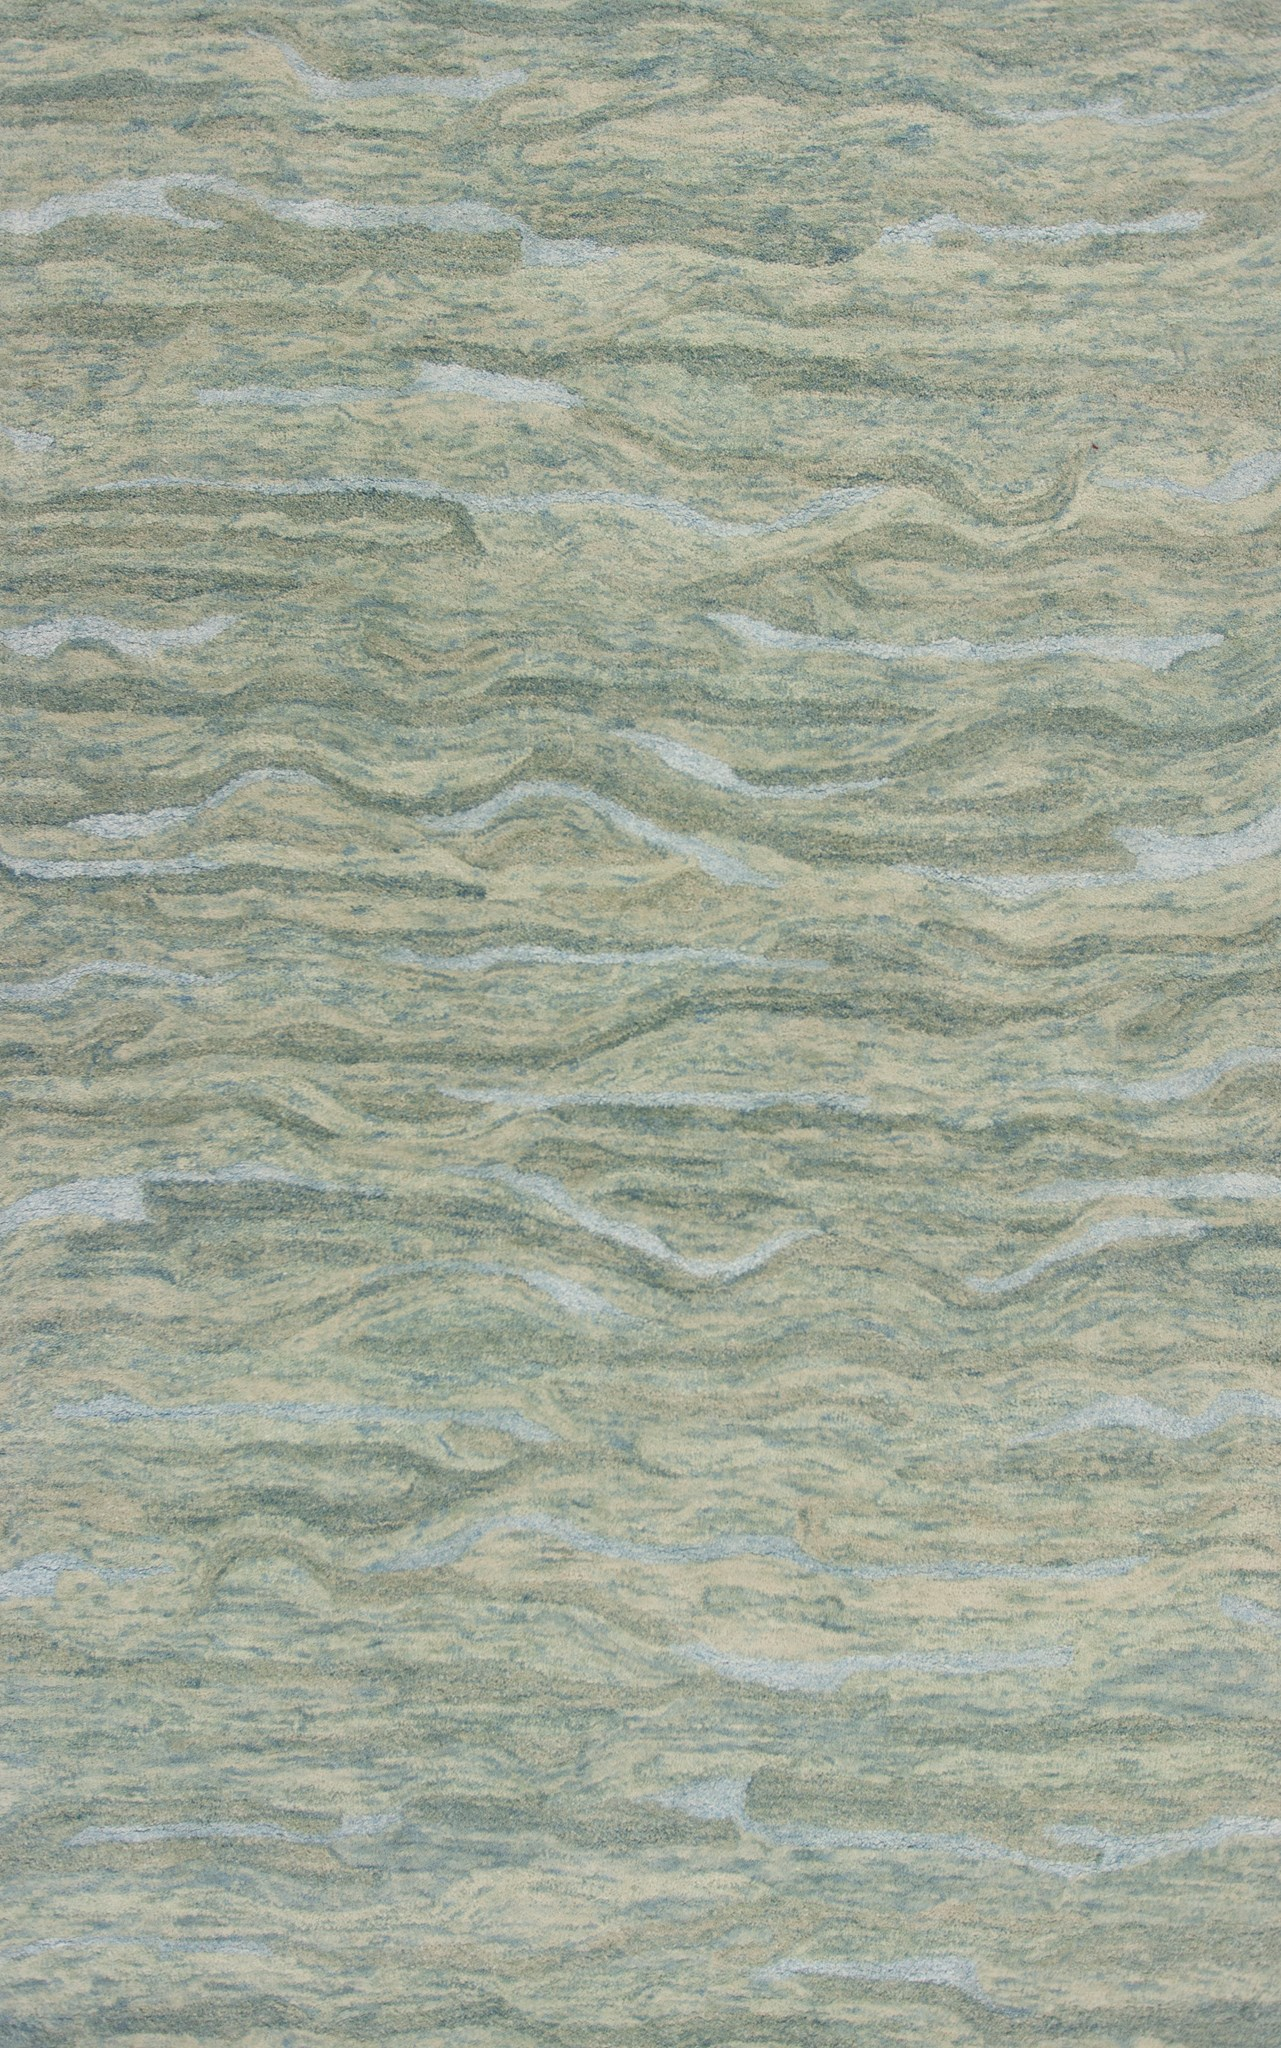 Serenity 1252 Seafoam Breeze